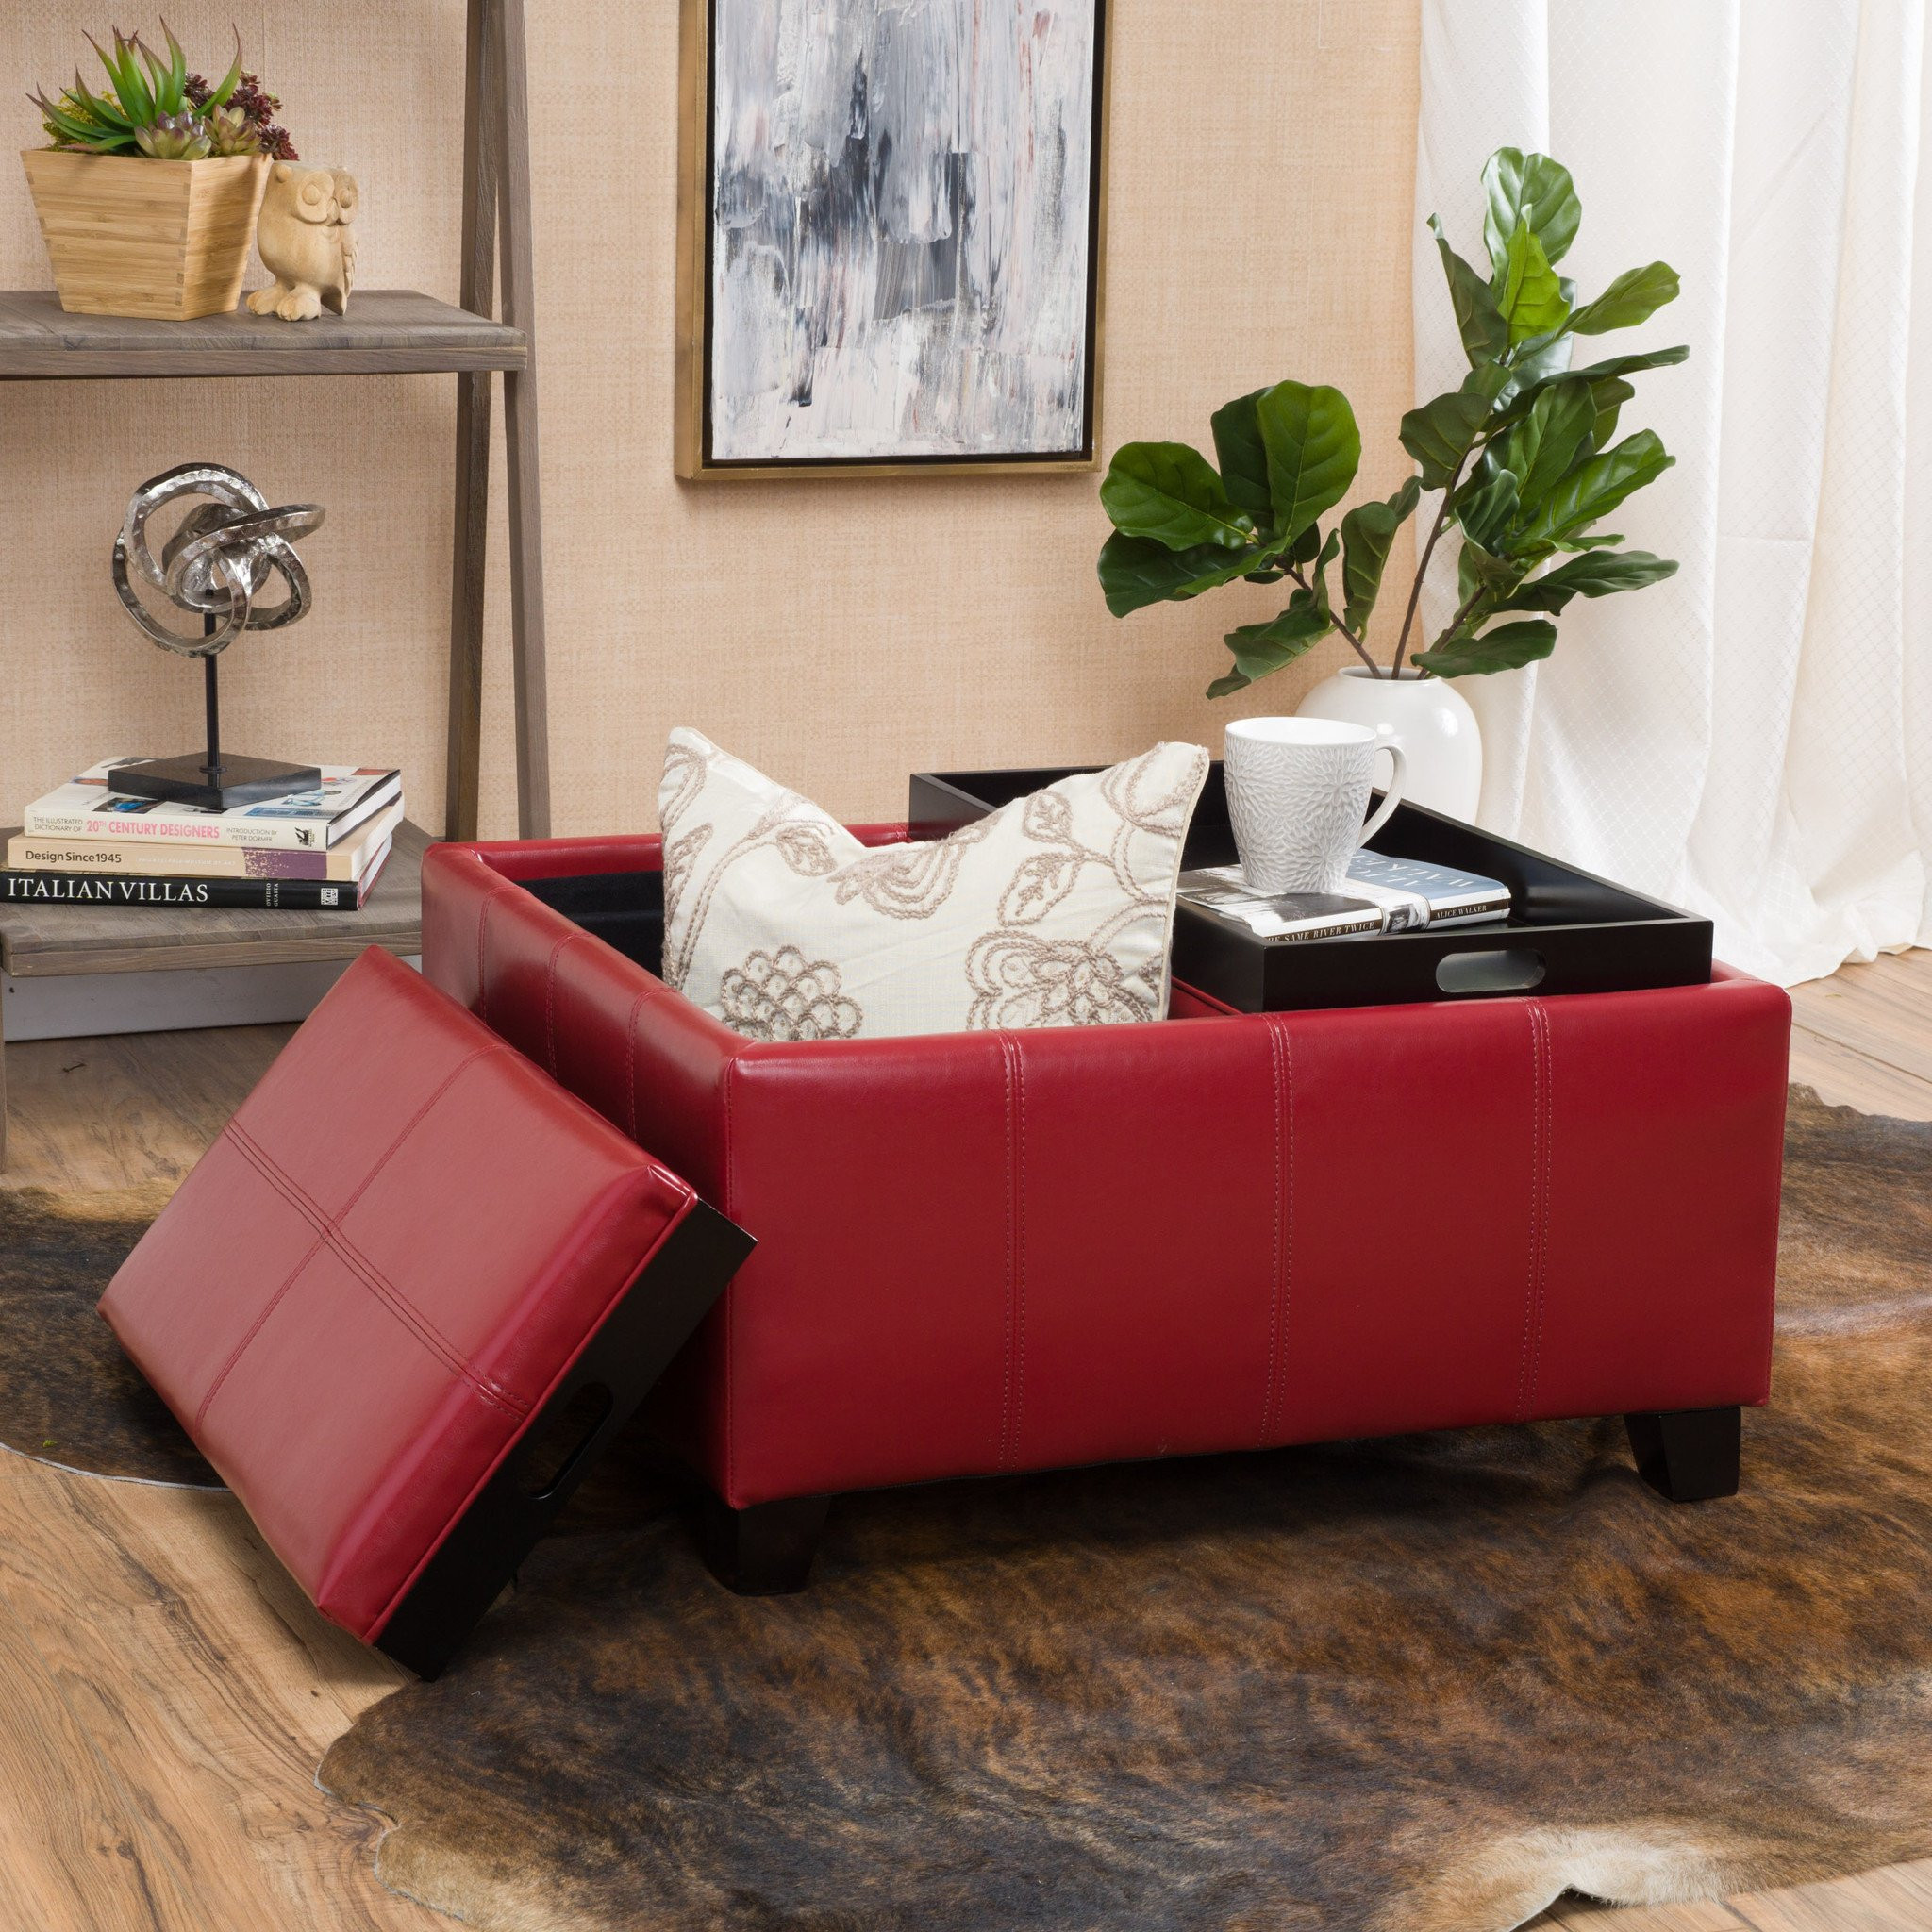 Justin 2-Tray-Top Red Ottoman Coffee Table w/ Stor...